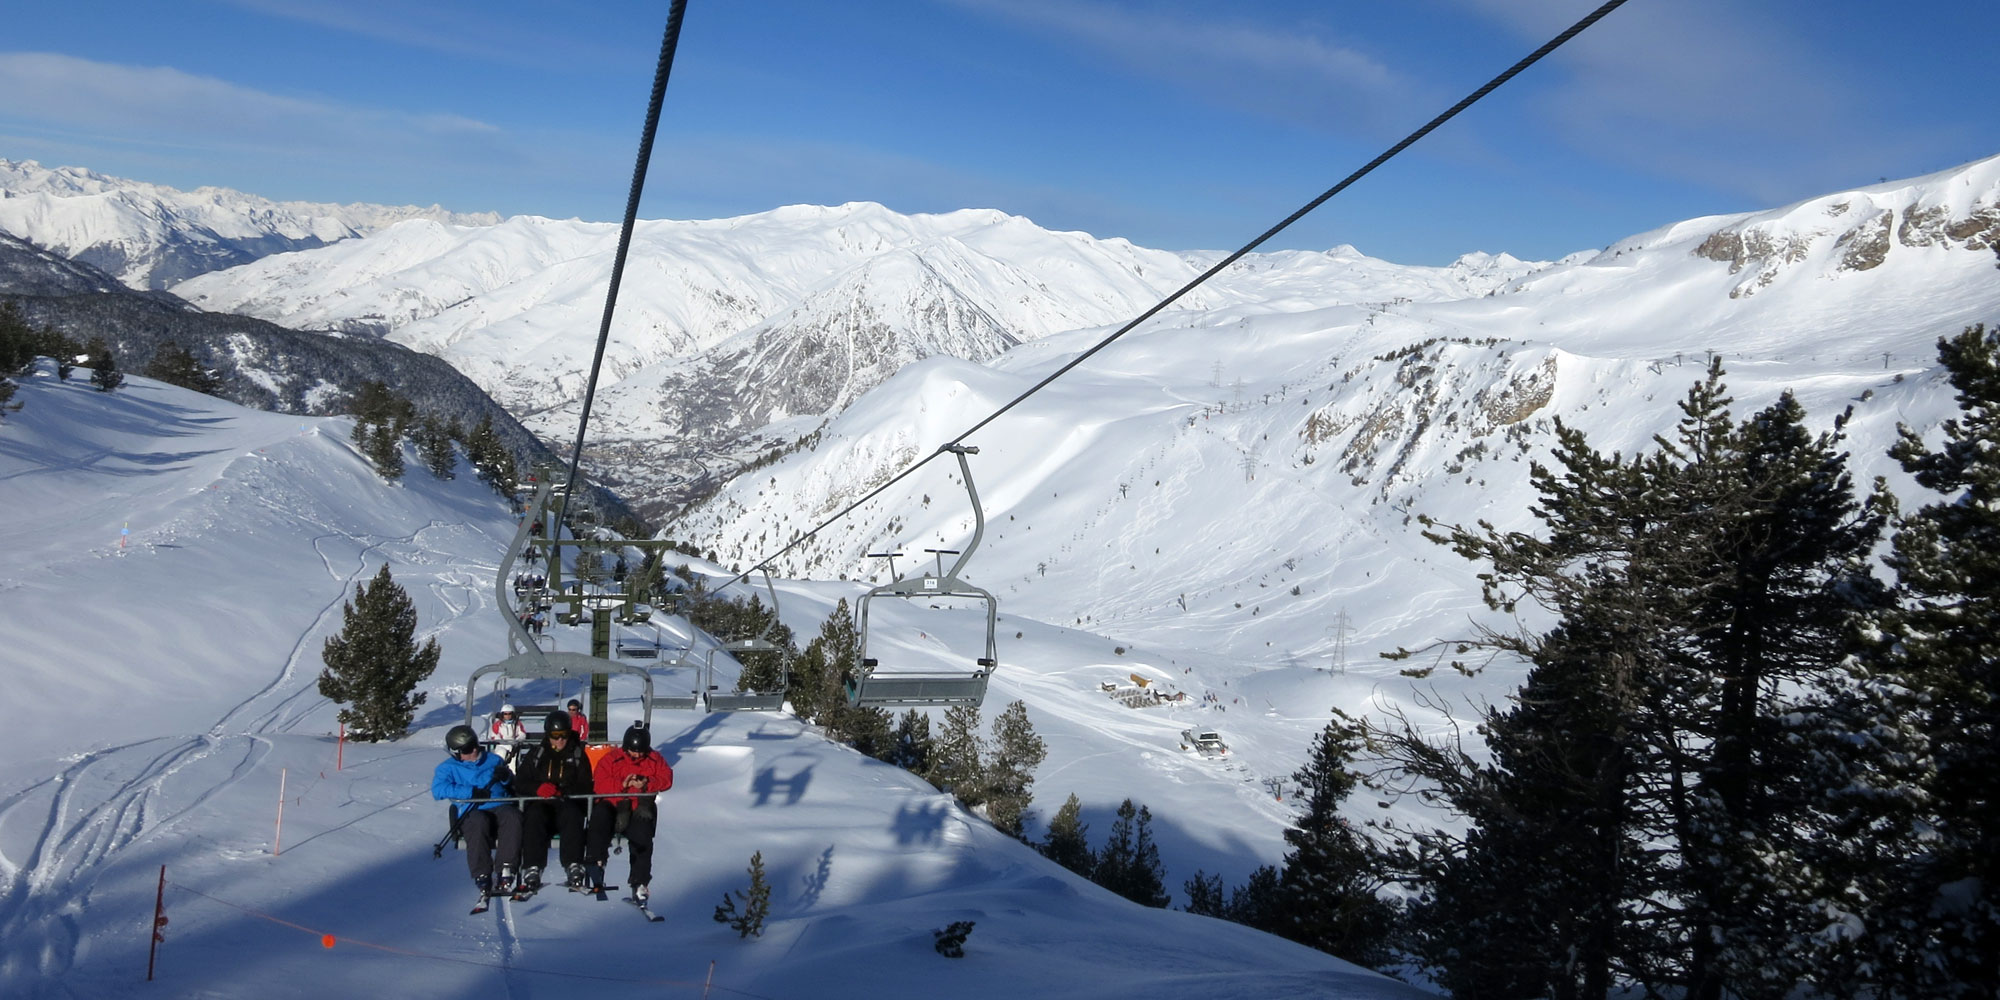 One of the ski lifts